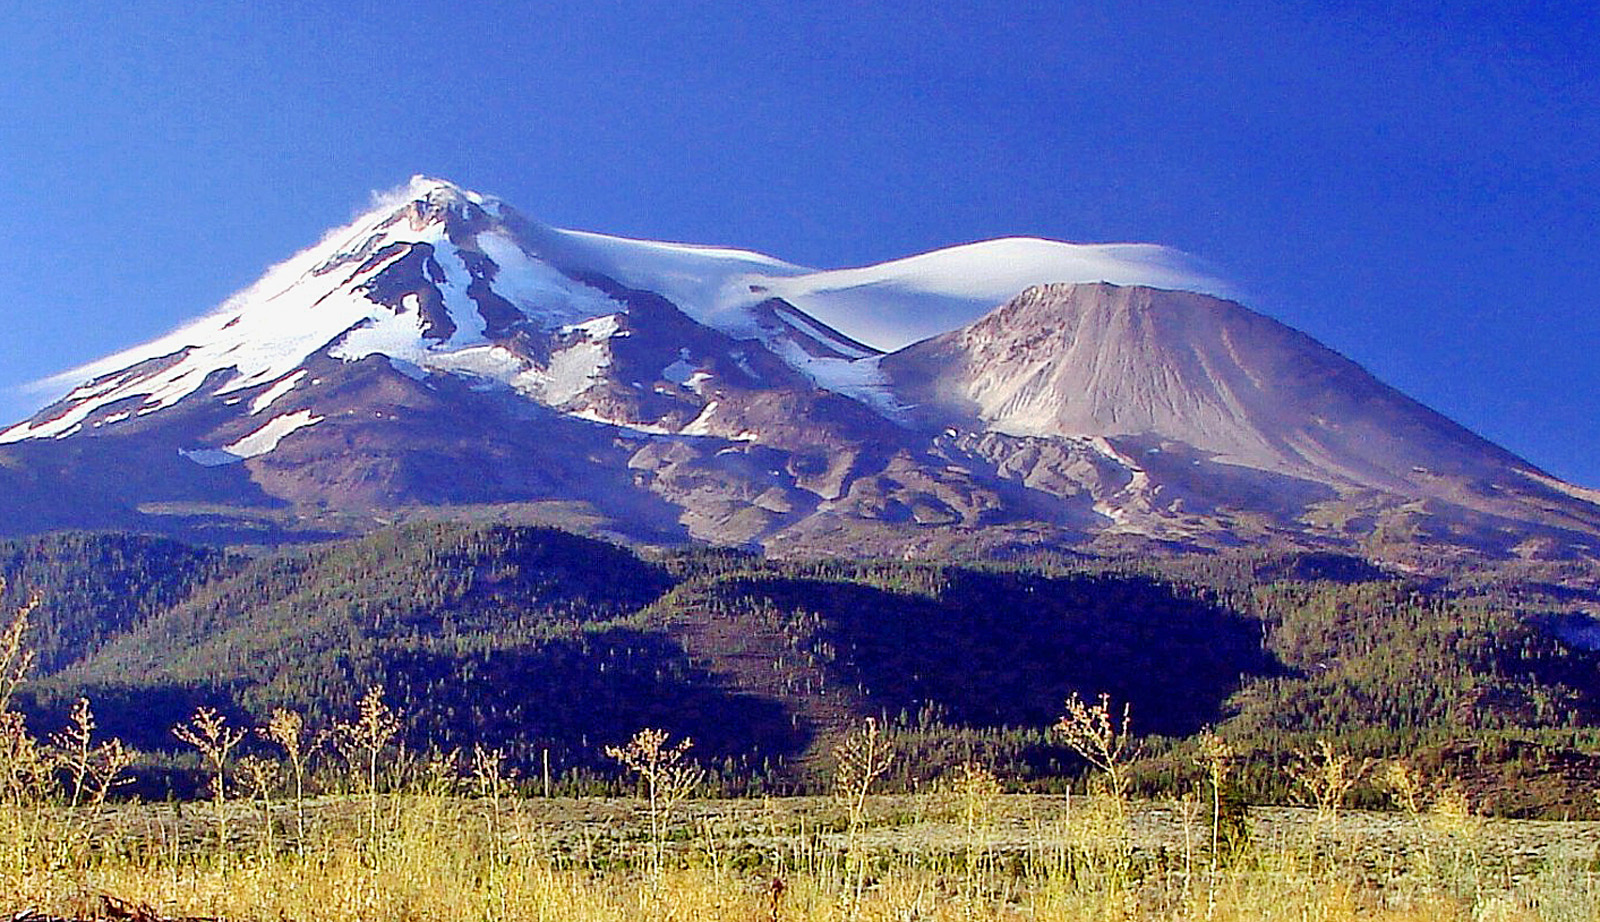 mount shasta dating Local news for mount-shasta, ca continually updated from thousands of sources on the web.